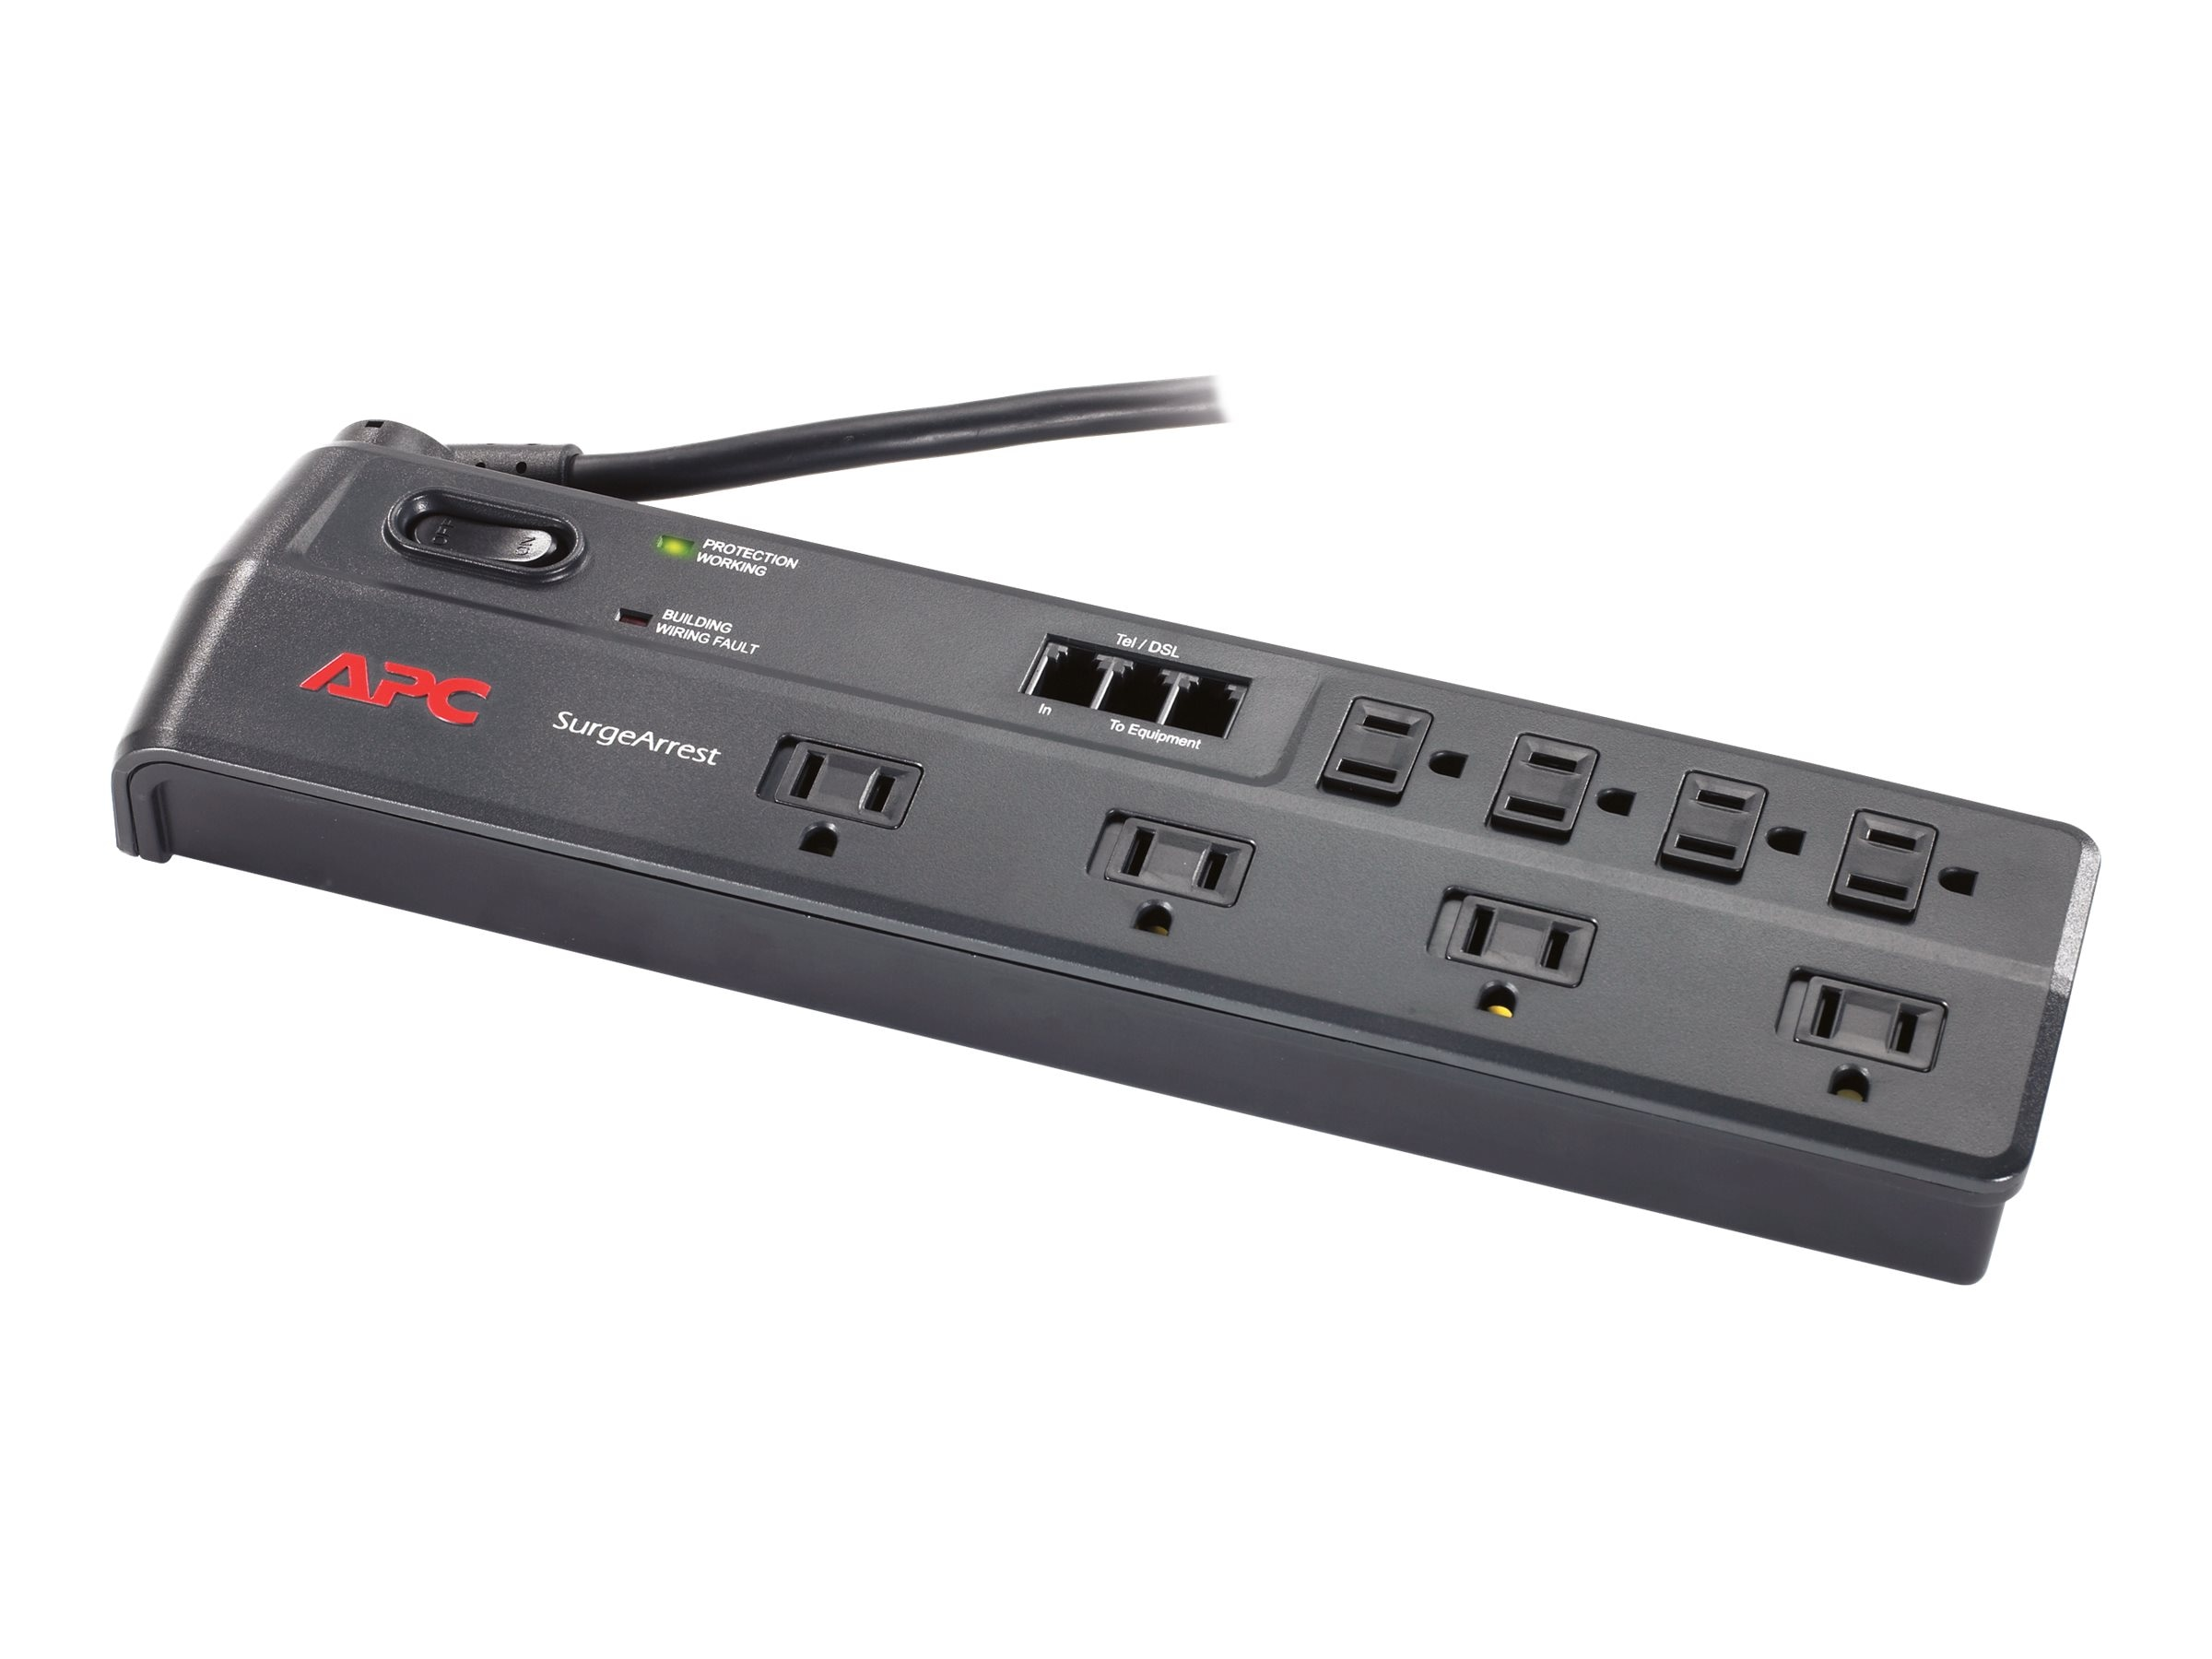 APC Home Office SurgeArrest (8) Outlets, 2770 Joules, Telephone Splitter, P8T3, 8295940, Surge Suppressors